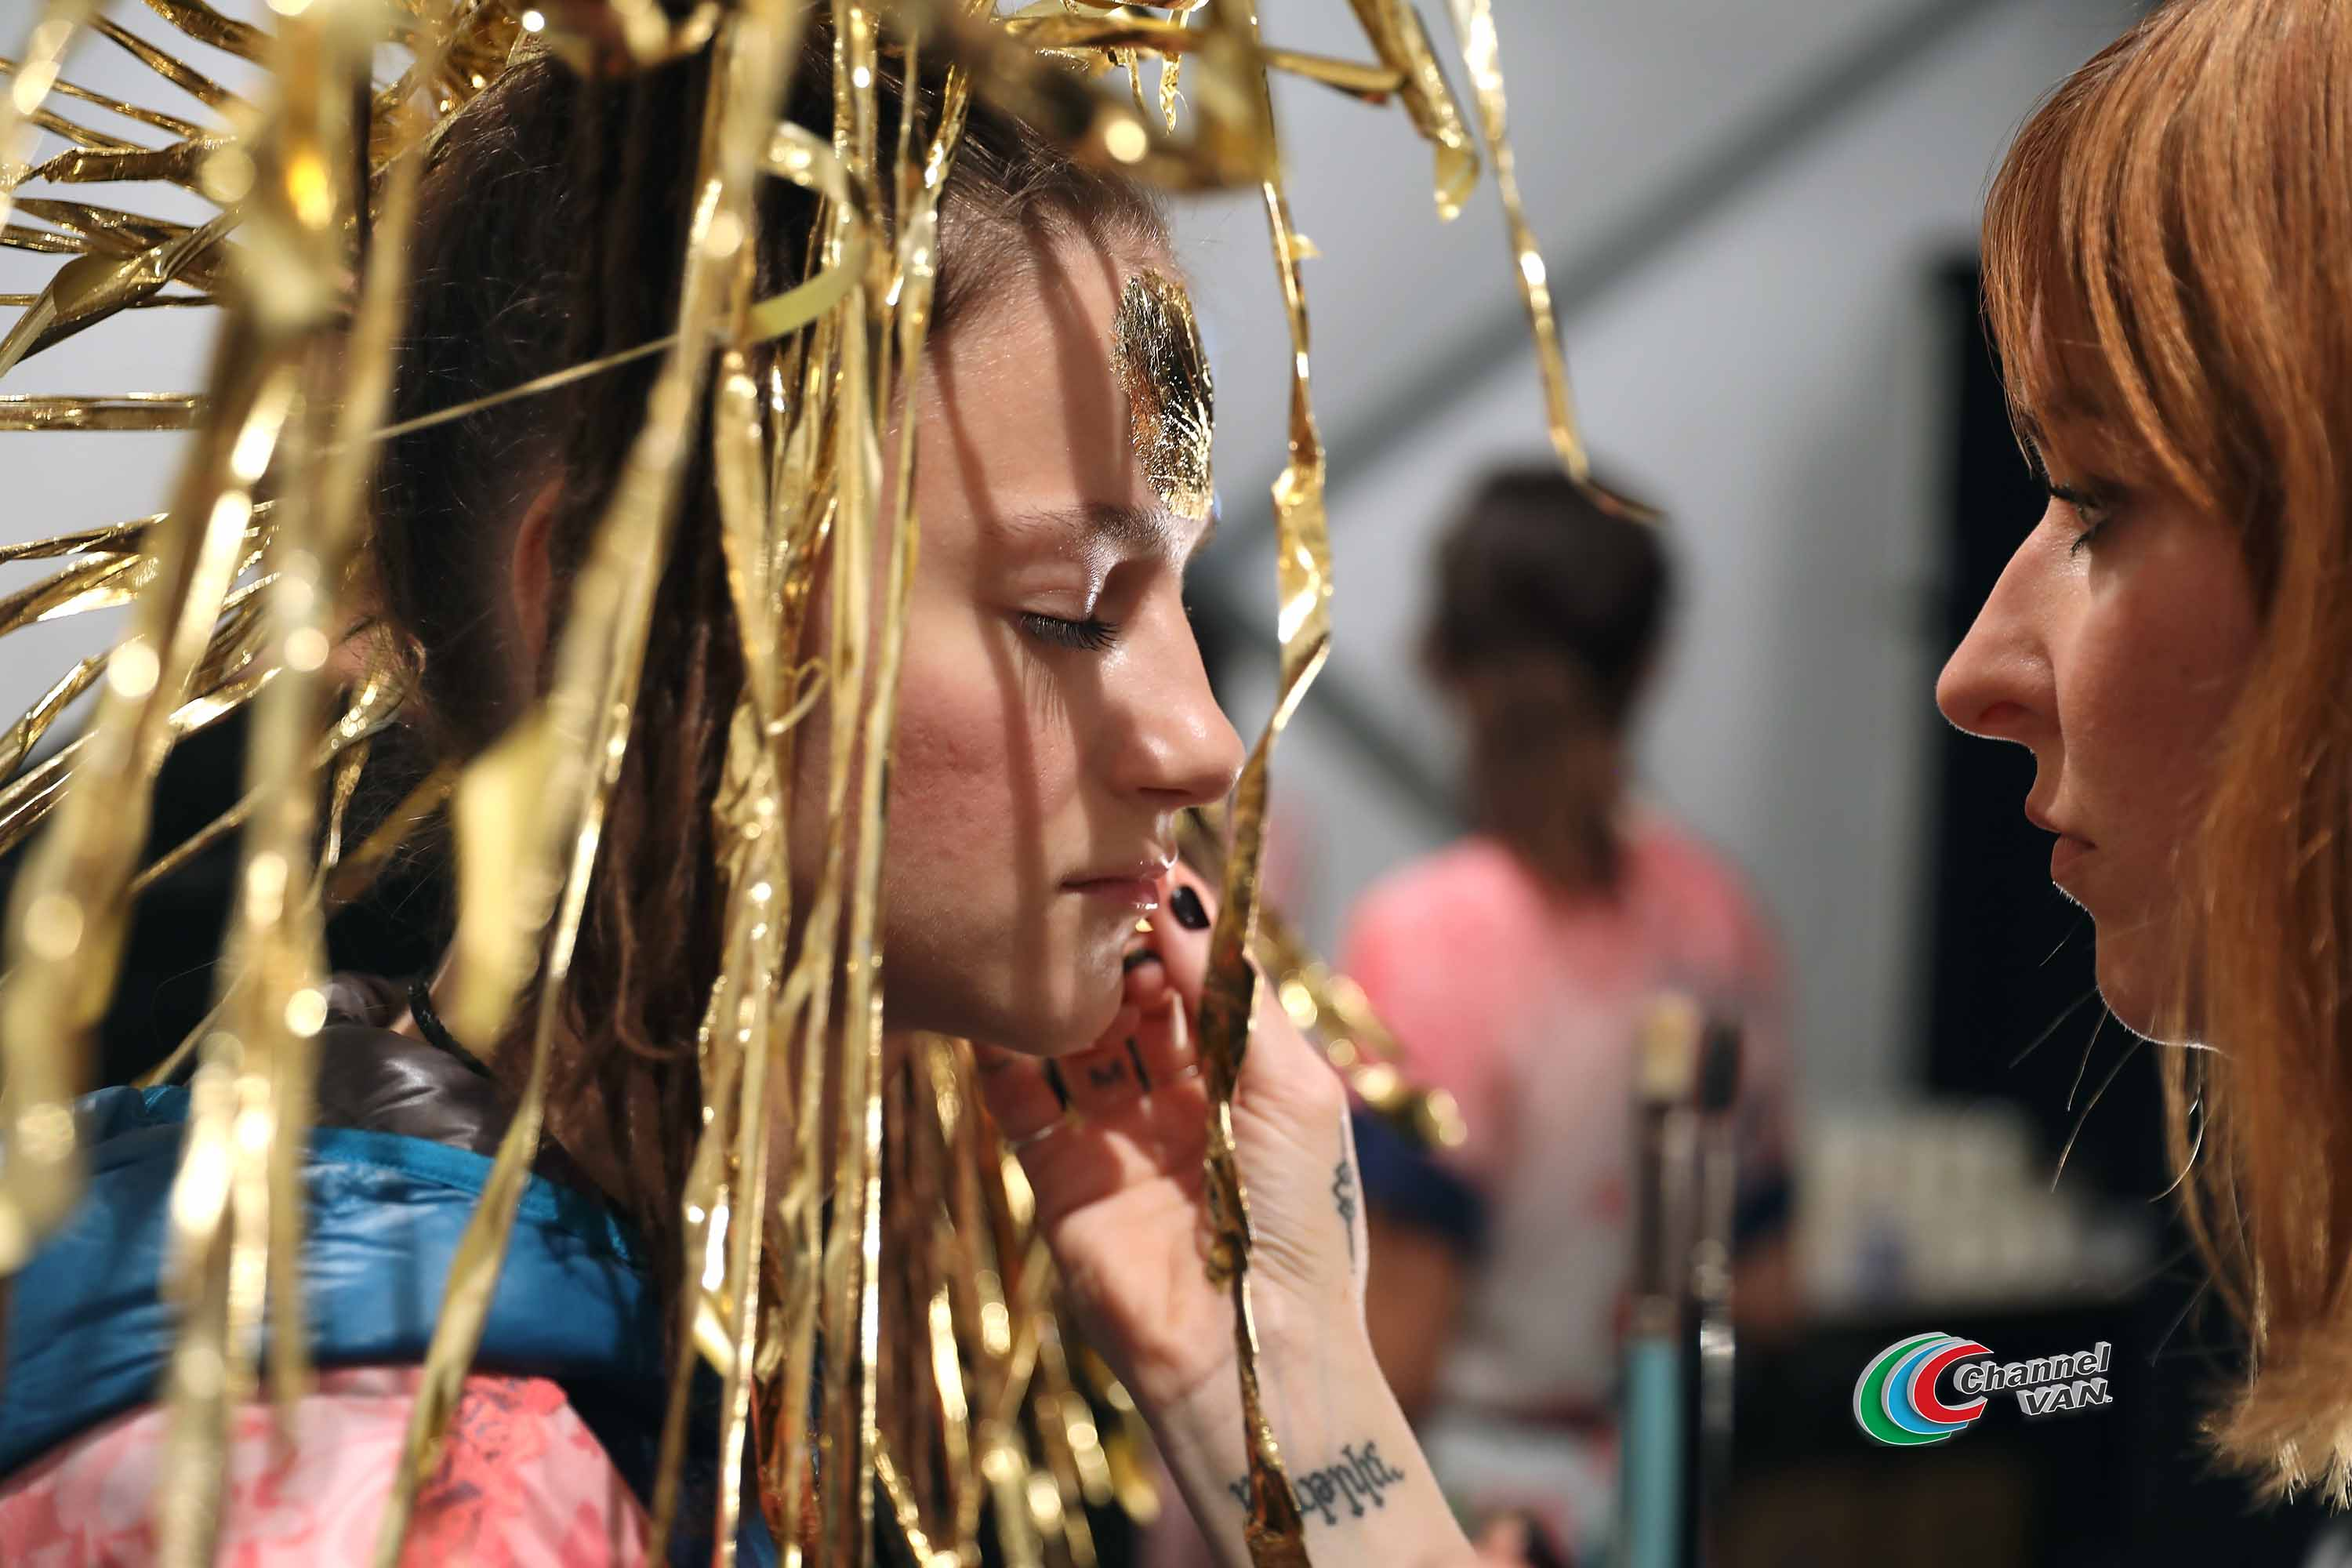 NEW YORK, NY - SEPTEMBER 07:  A model prepares backstage for Desigual fashion show during New York Fashion Week: The Shows at Gallery 1, Skylight Clarkson Sq on September 7, 2017 in New York City.  (Photo by Anna Webber/Getty Images For Desigual )